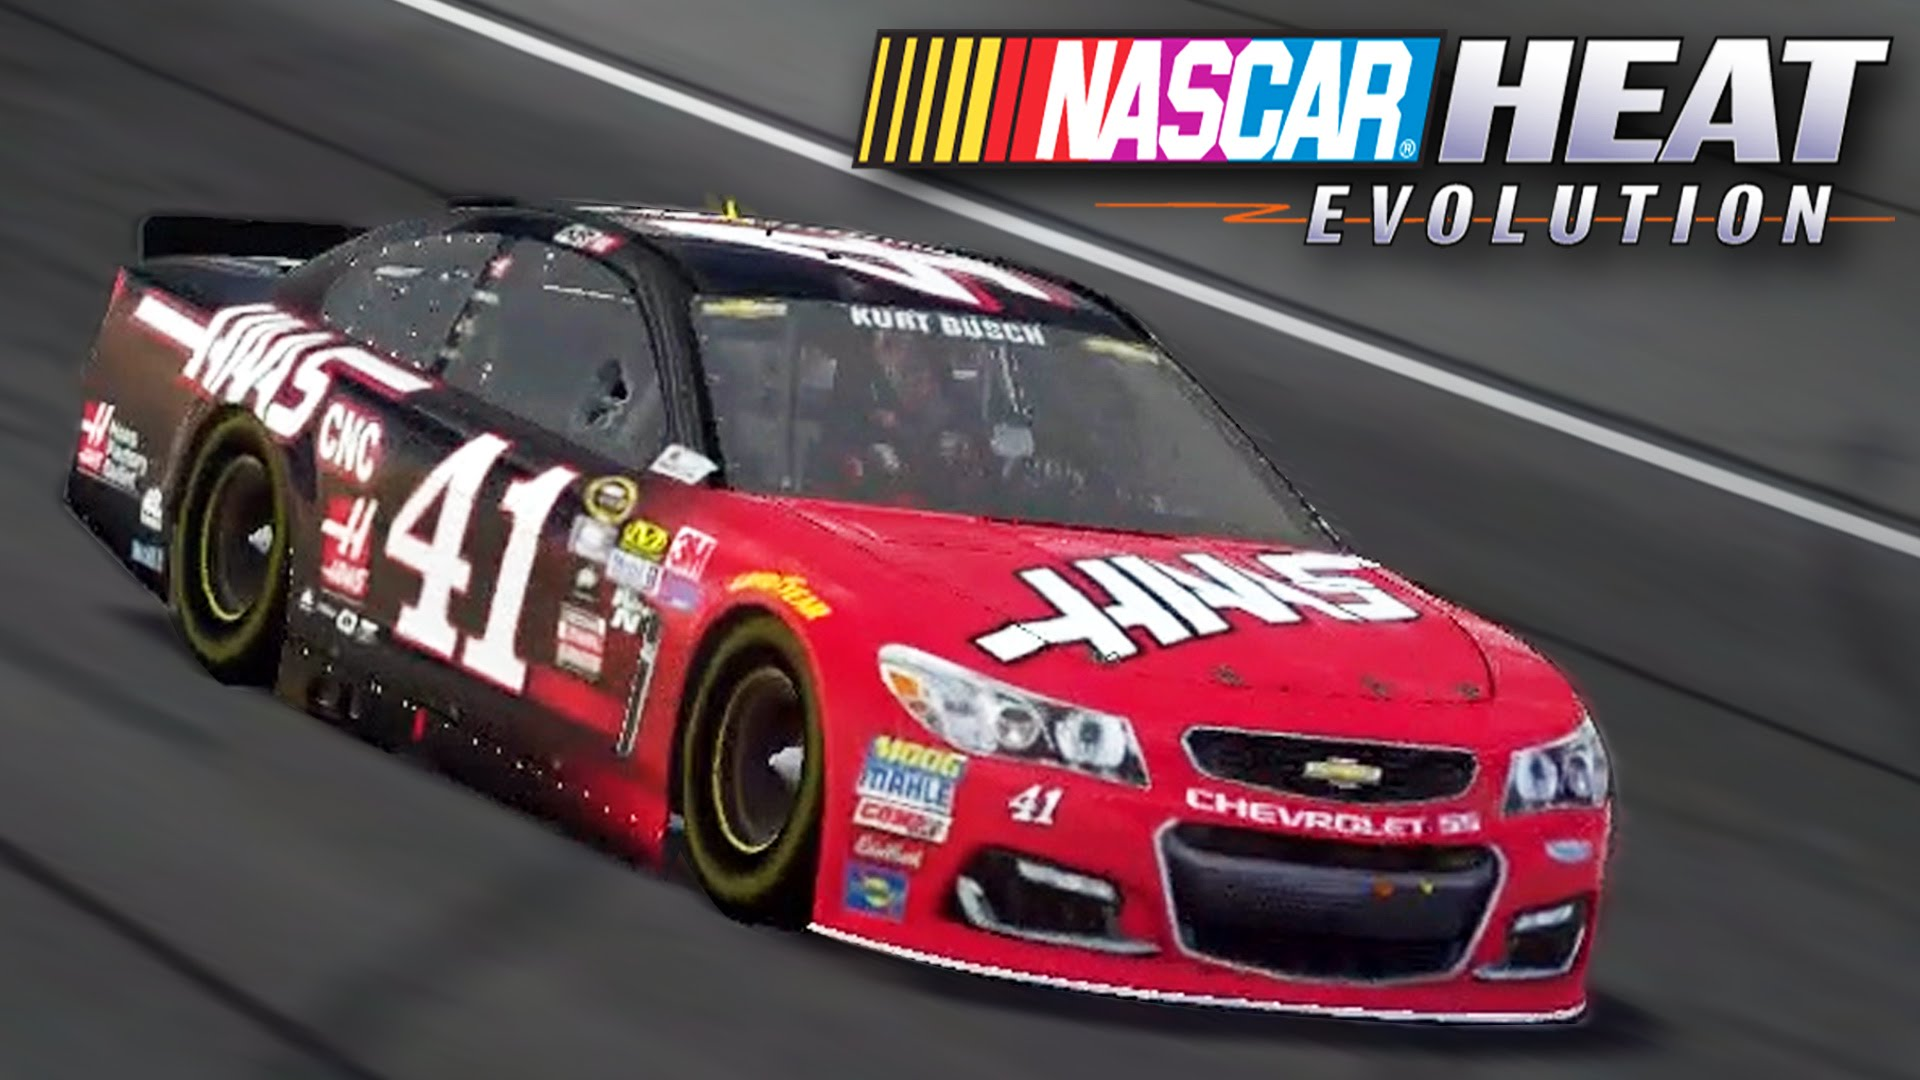 Nascar 2018 Cars >> Nascar Heat Evolution HD Wallpapers